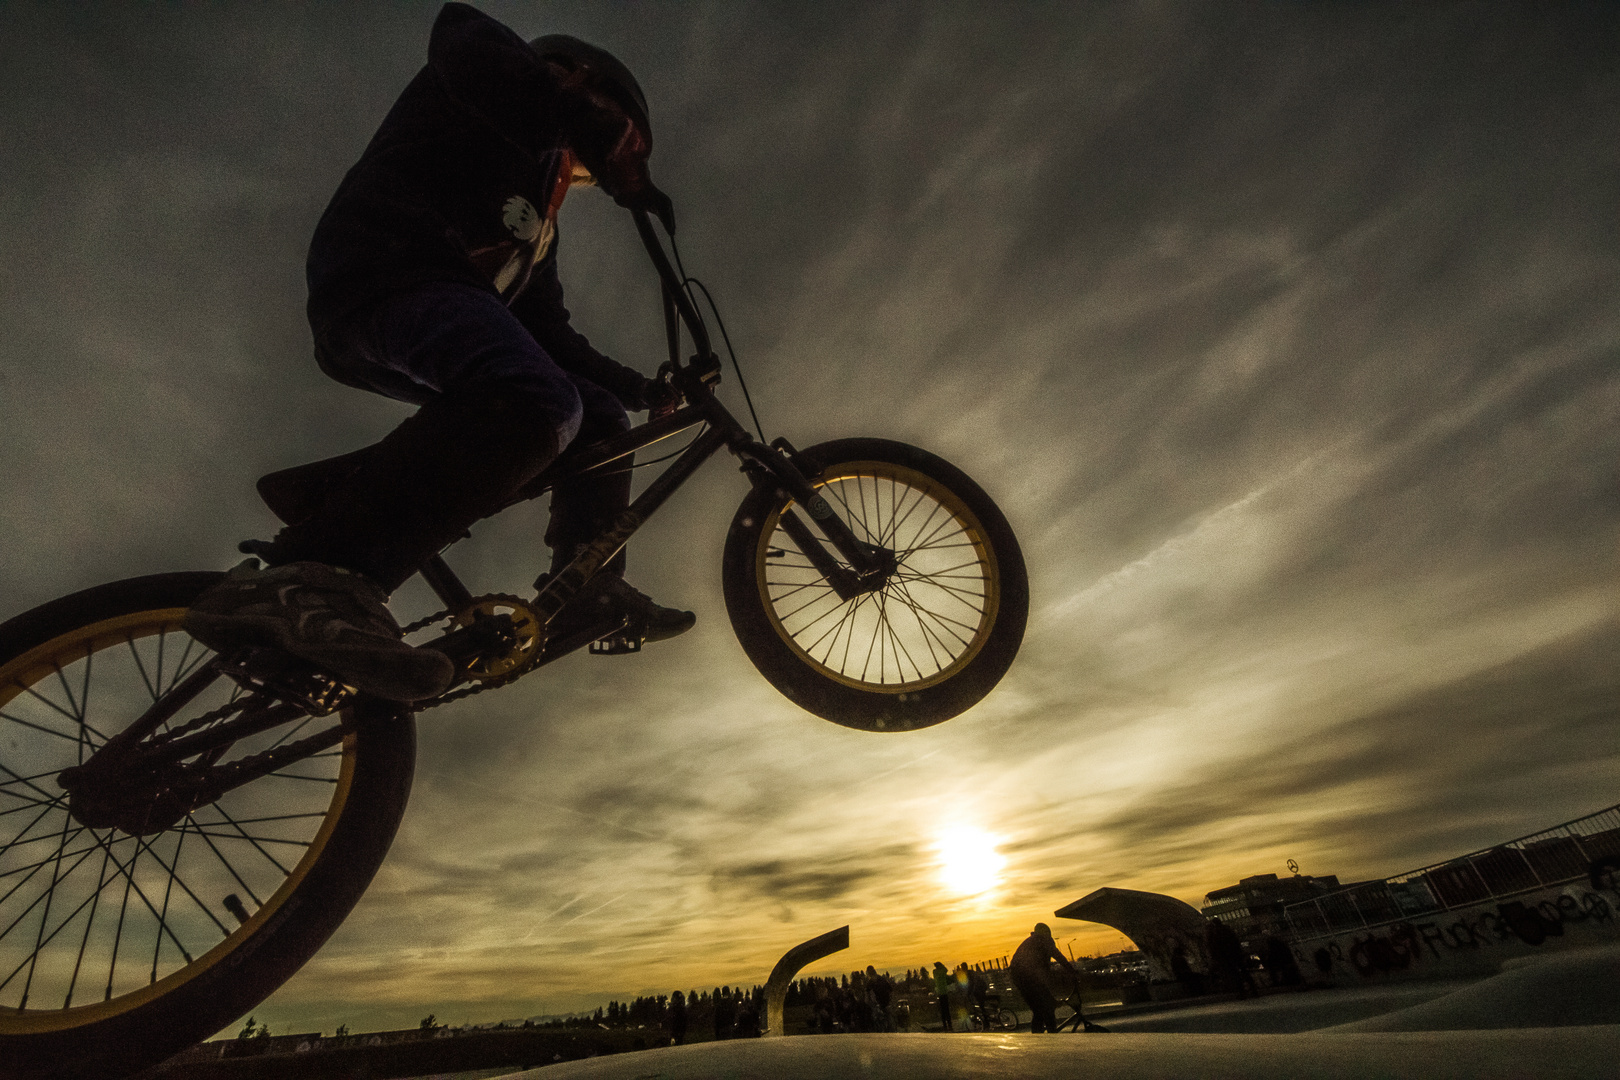 Freestyle at sunset